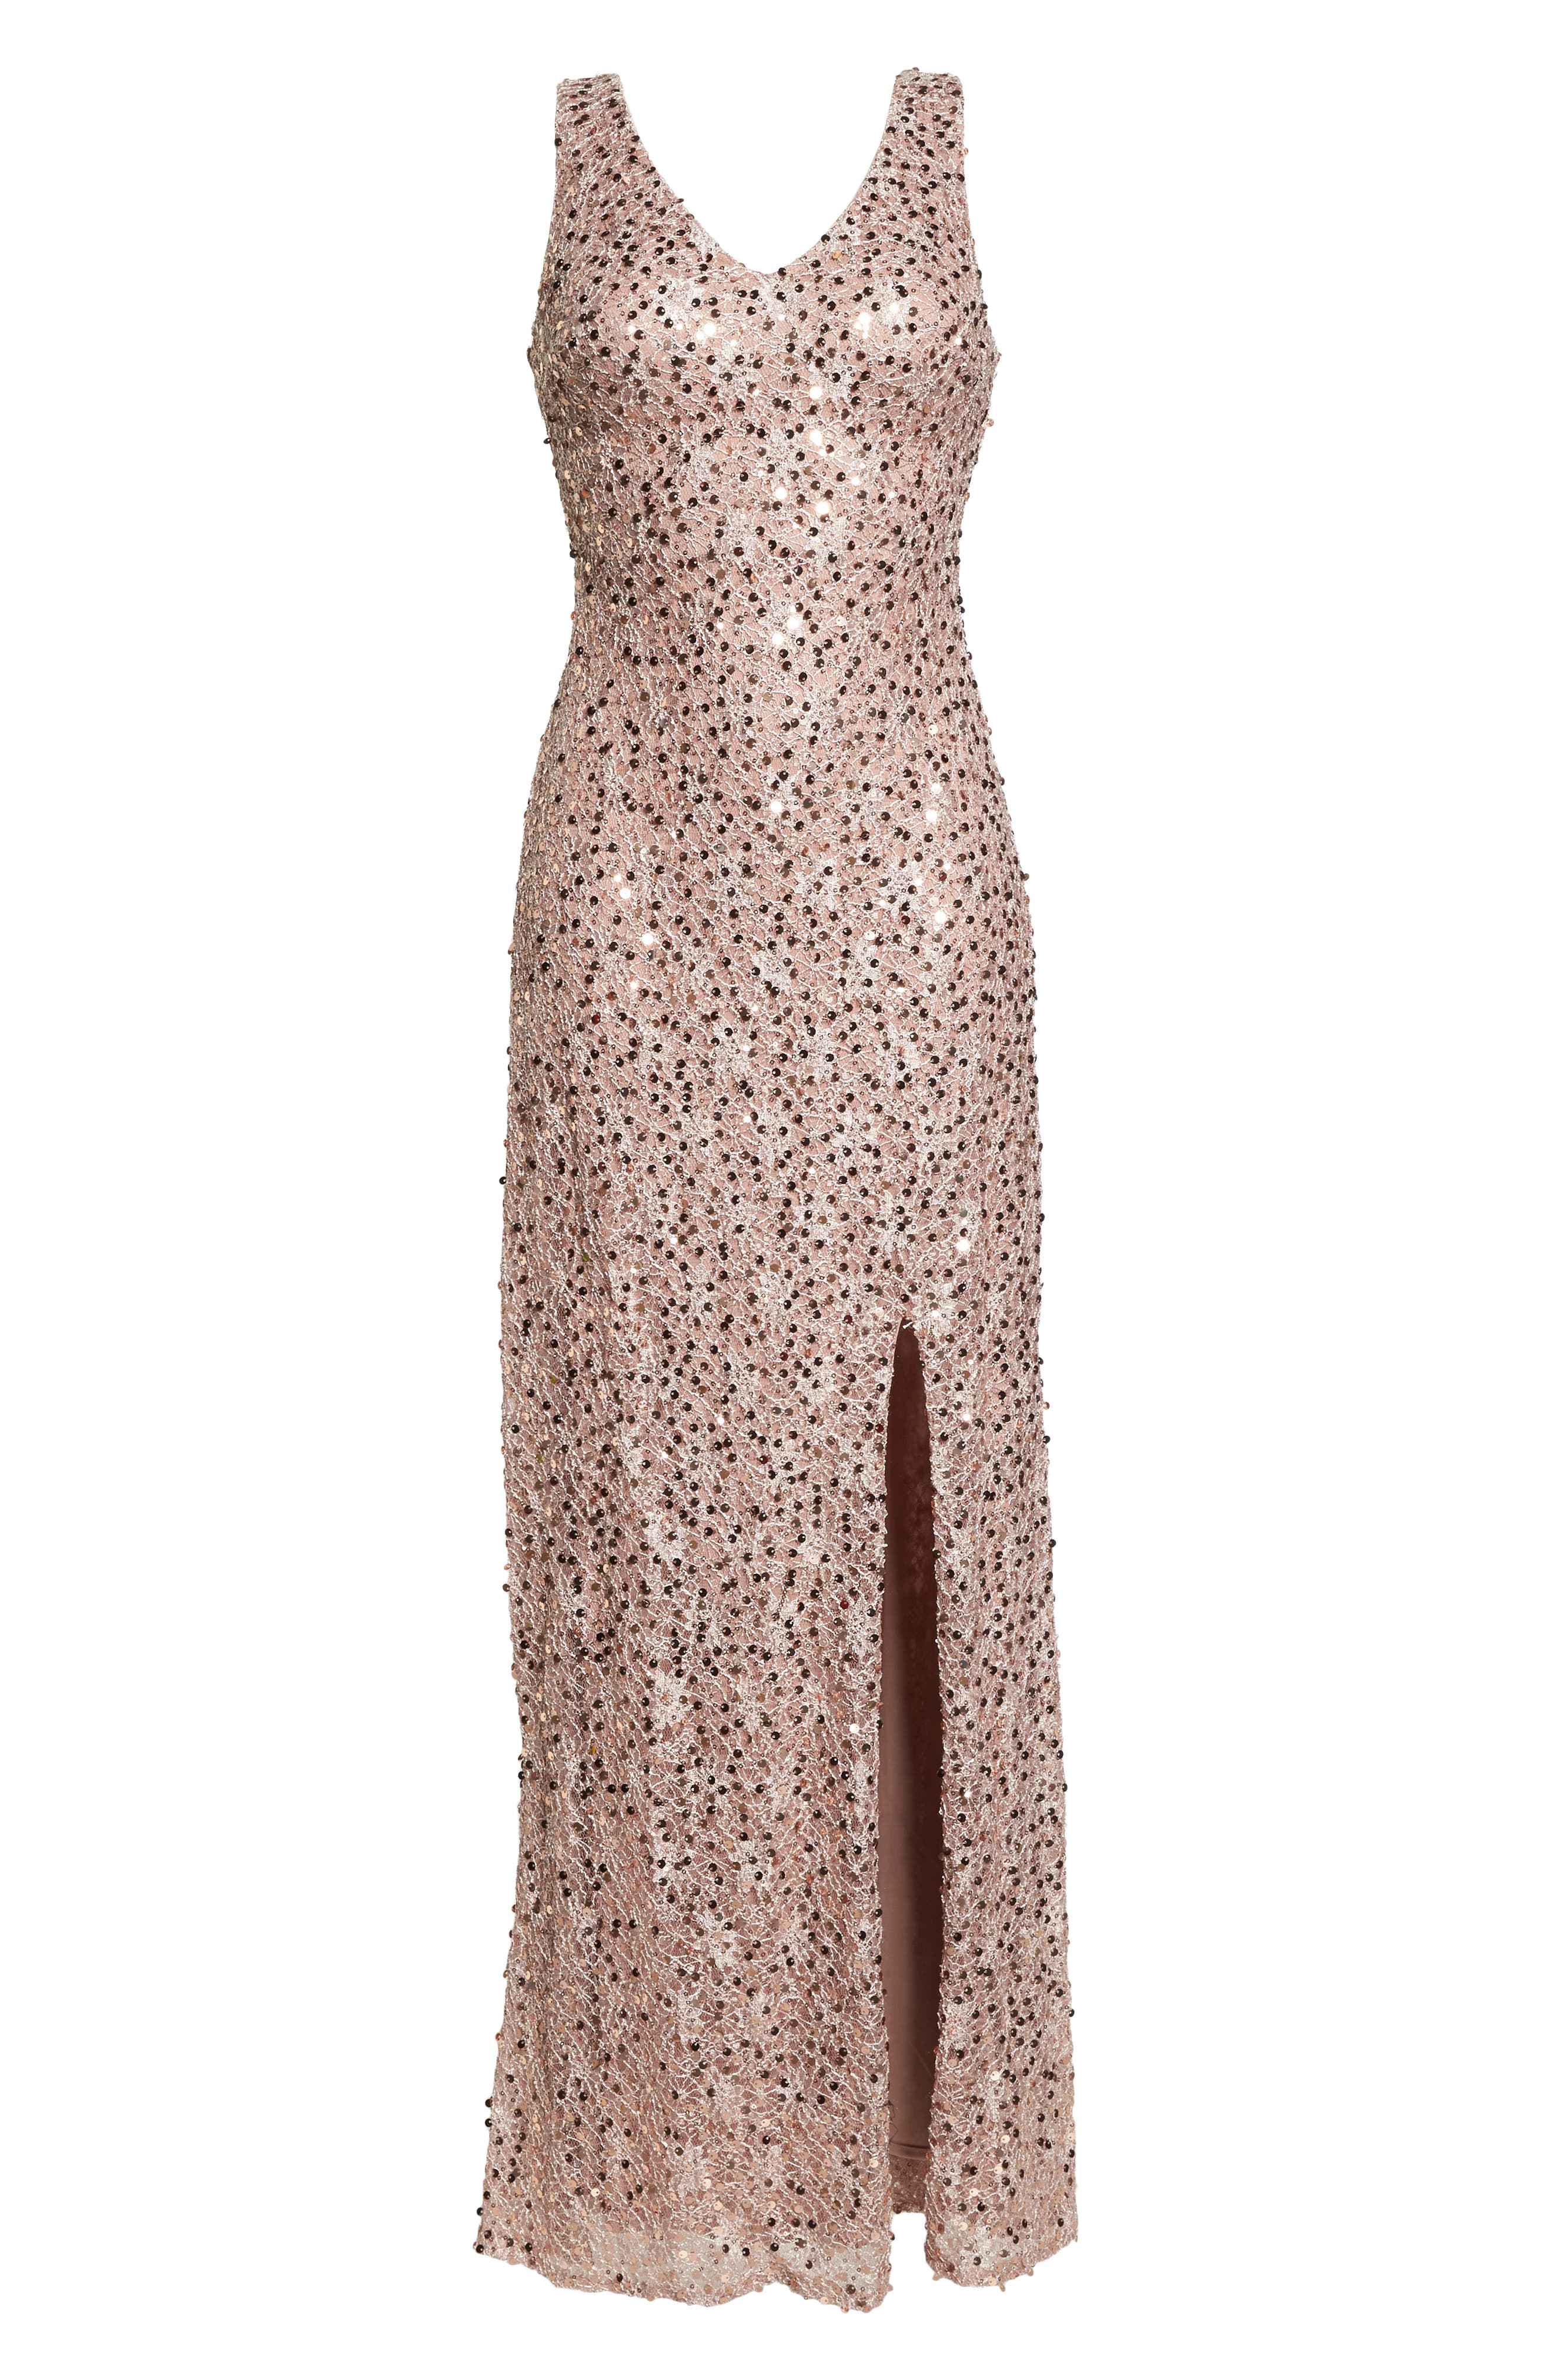 MORGAN & CO., Sequin & Lace Gown, Alternate thumbnail 7, color, ROSE GOLD